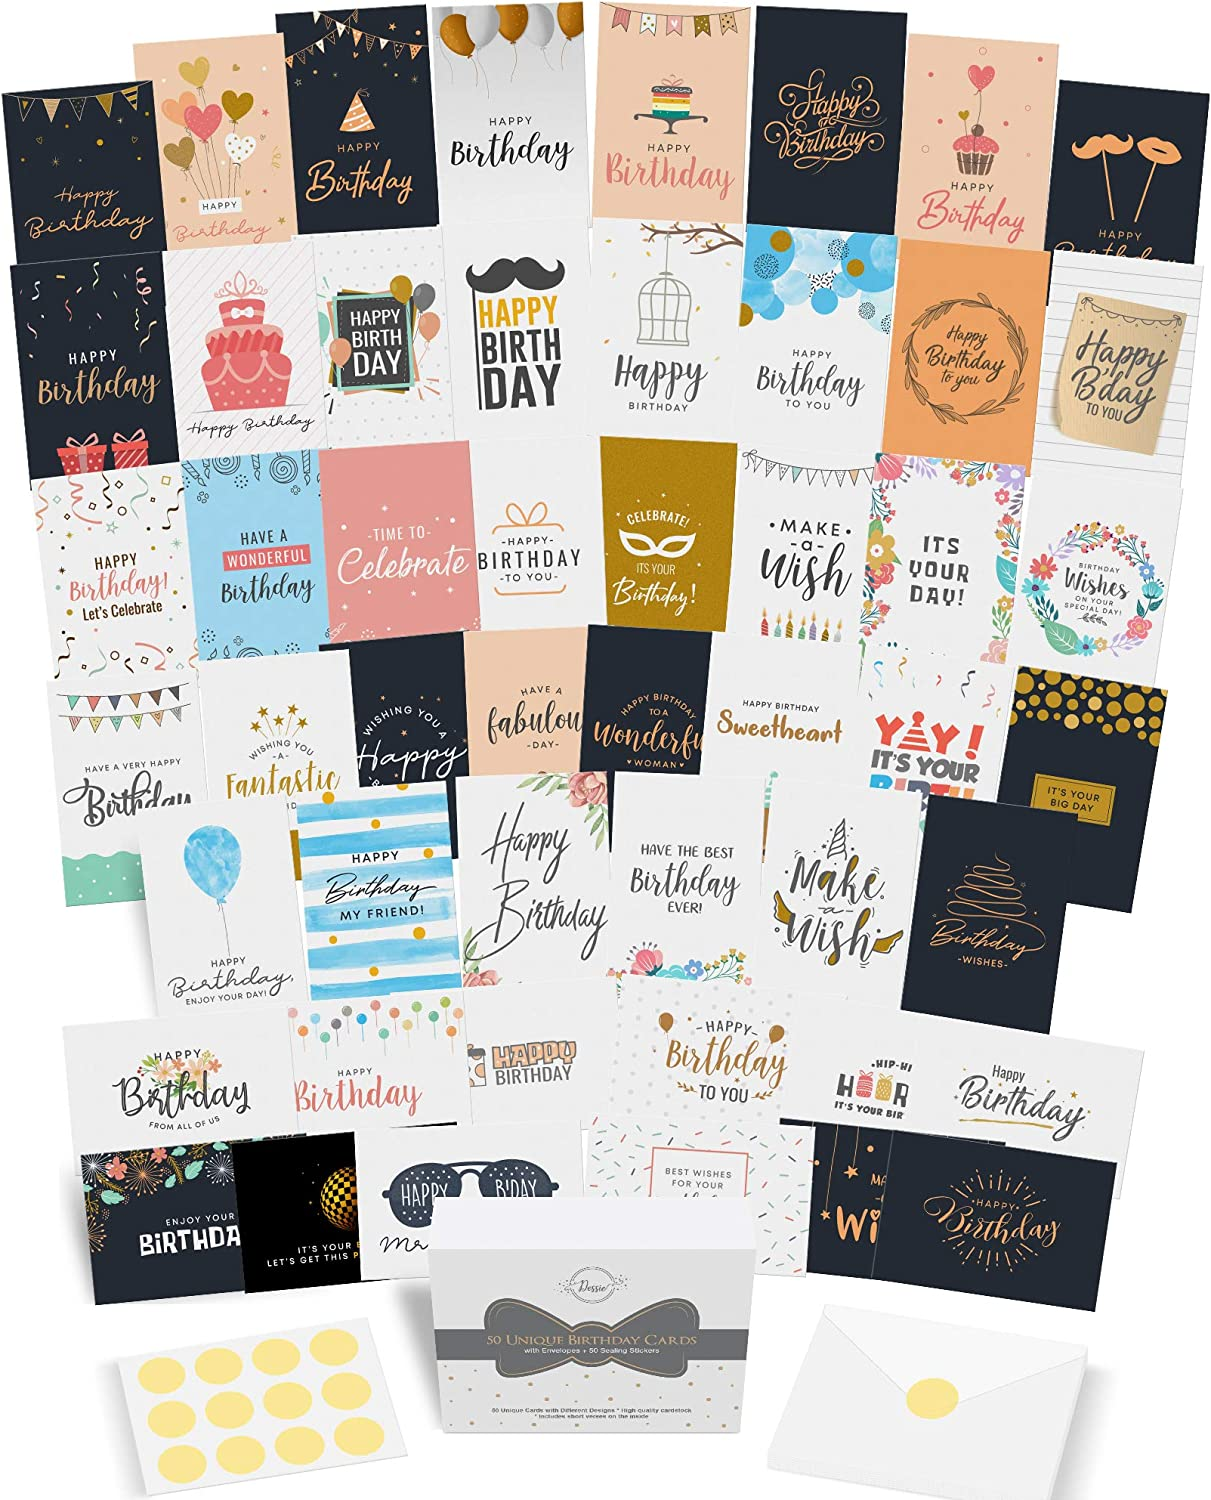 Dessie 50 Unique Birthday Cards Assortment with Generic Birthday Greetings Inside. Suitable For Men, Women and Kids At Home Or At Work. Send As Is Or Personalize. Includes Envelopes and Gold Stickers